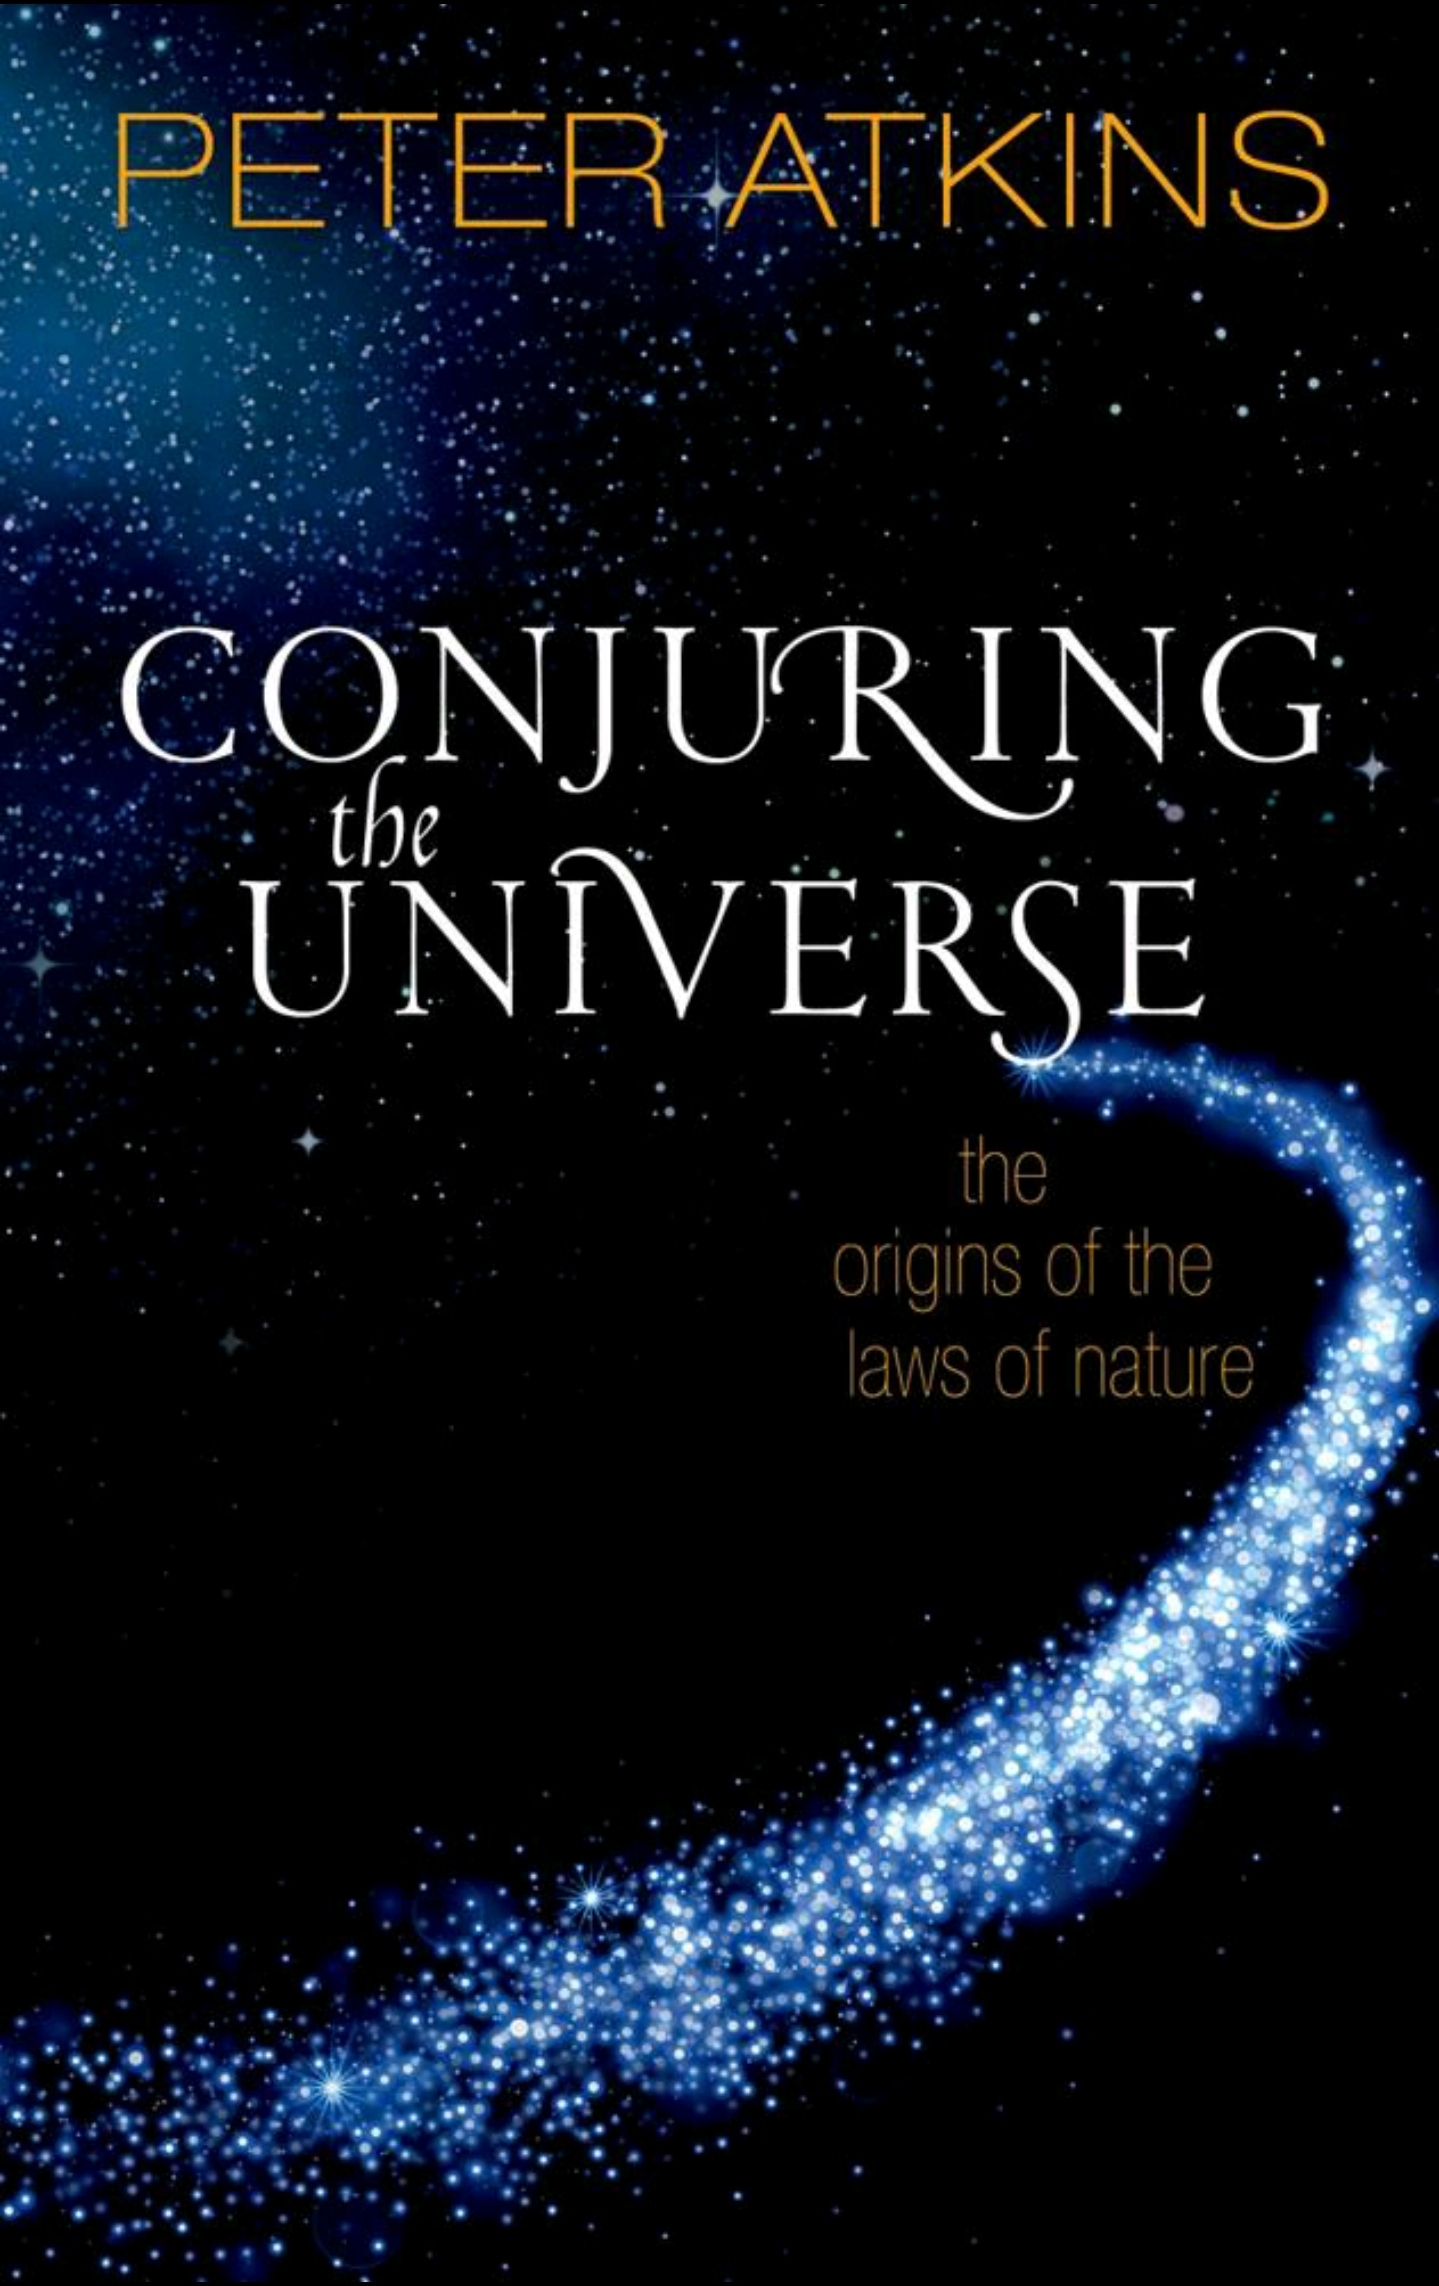 Peter Atkins' Conjuring the Universe: the origin of the laws of nature